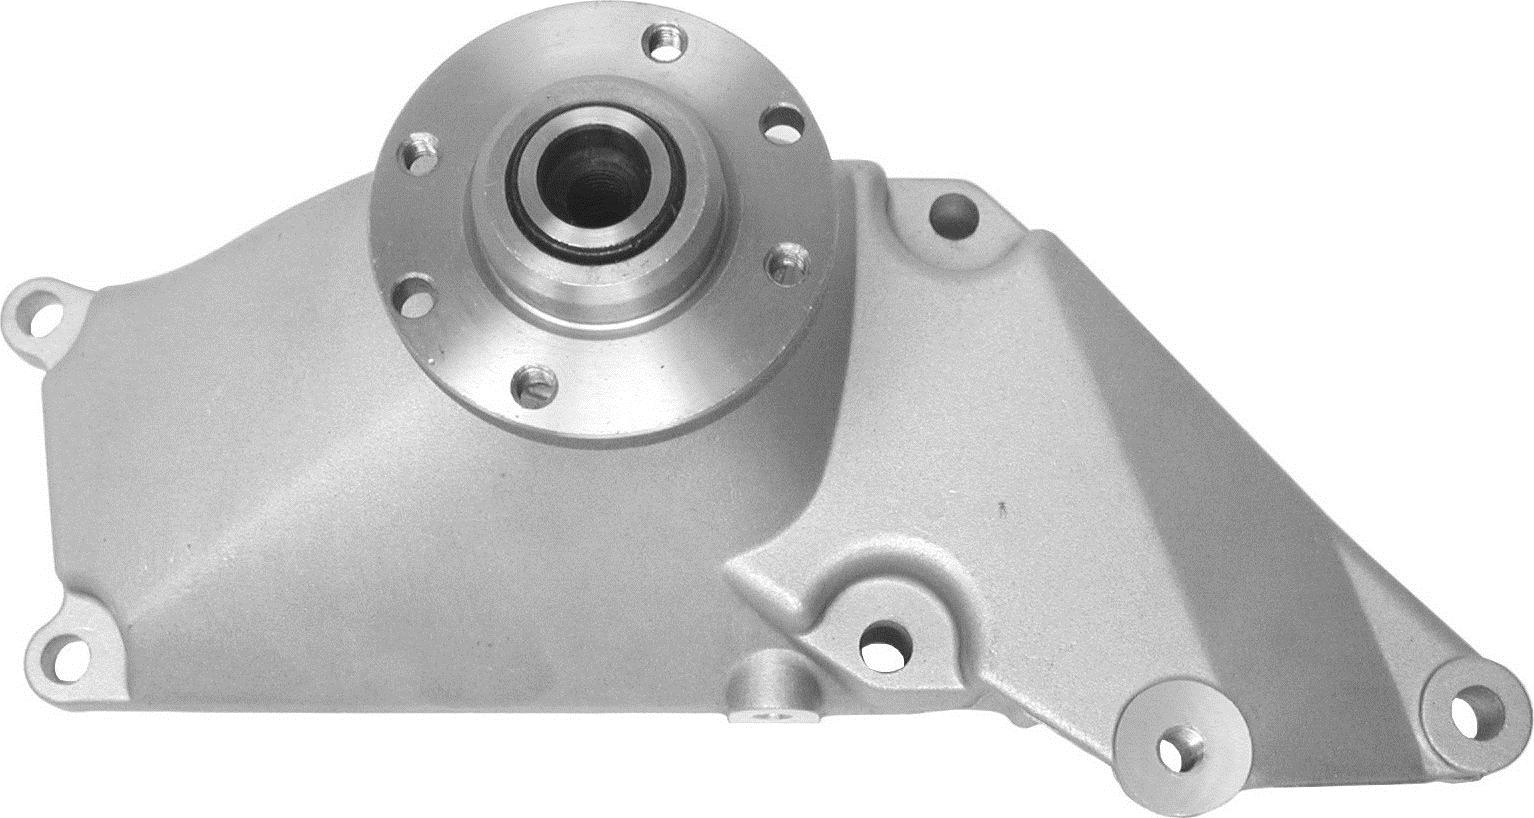 hight resolution of engine cooling fan clutch bearing bracket 1042001528a main image